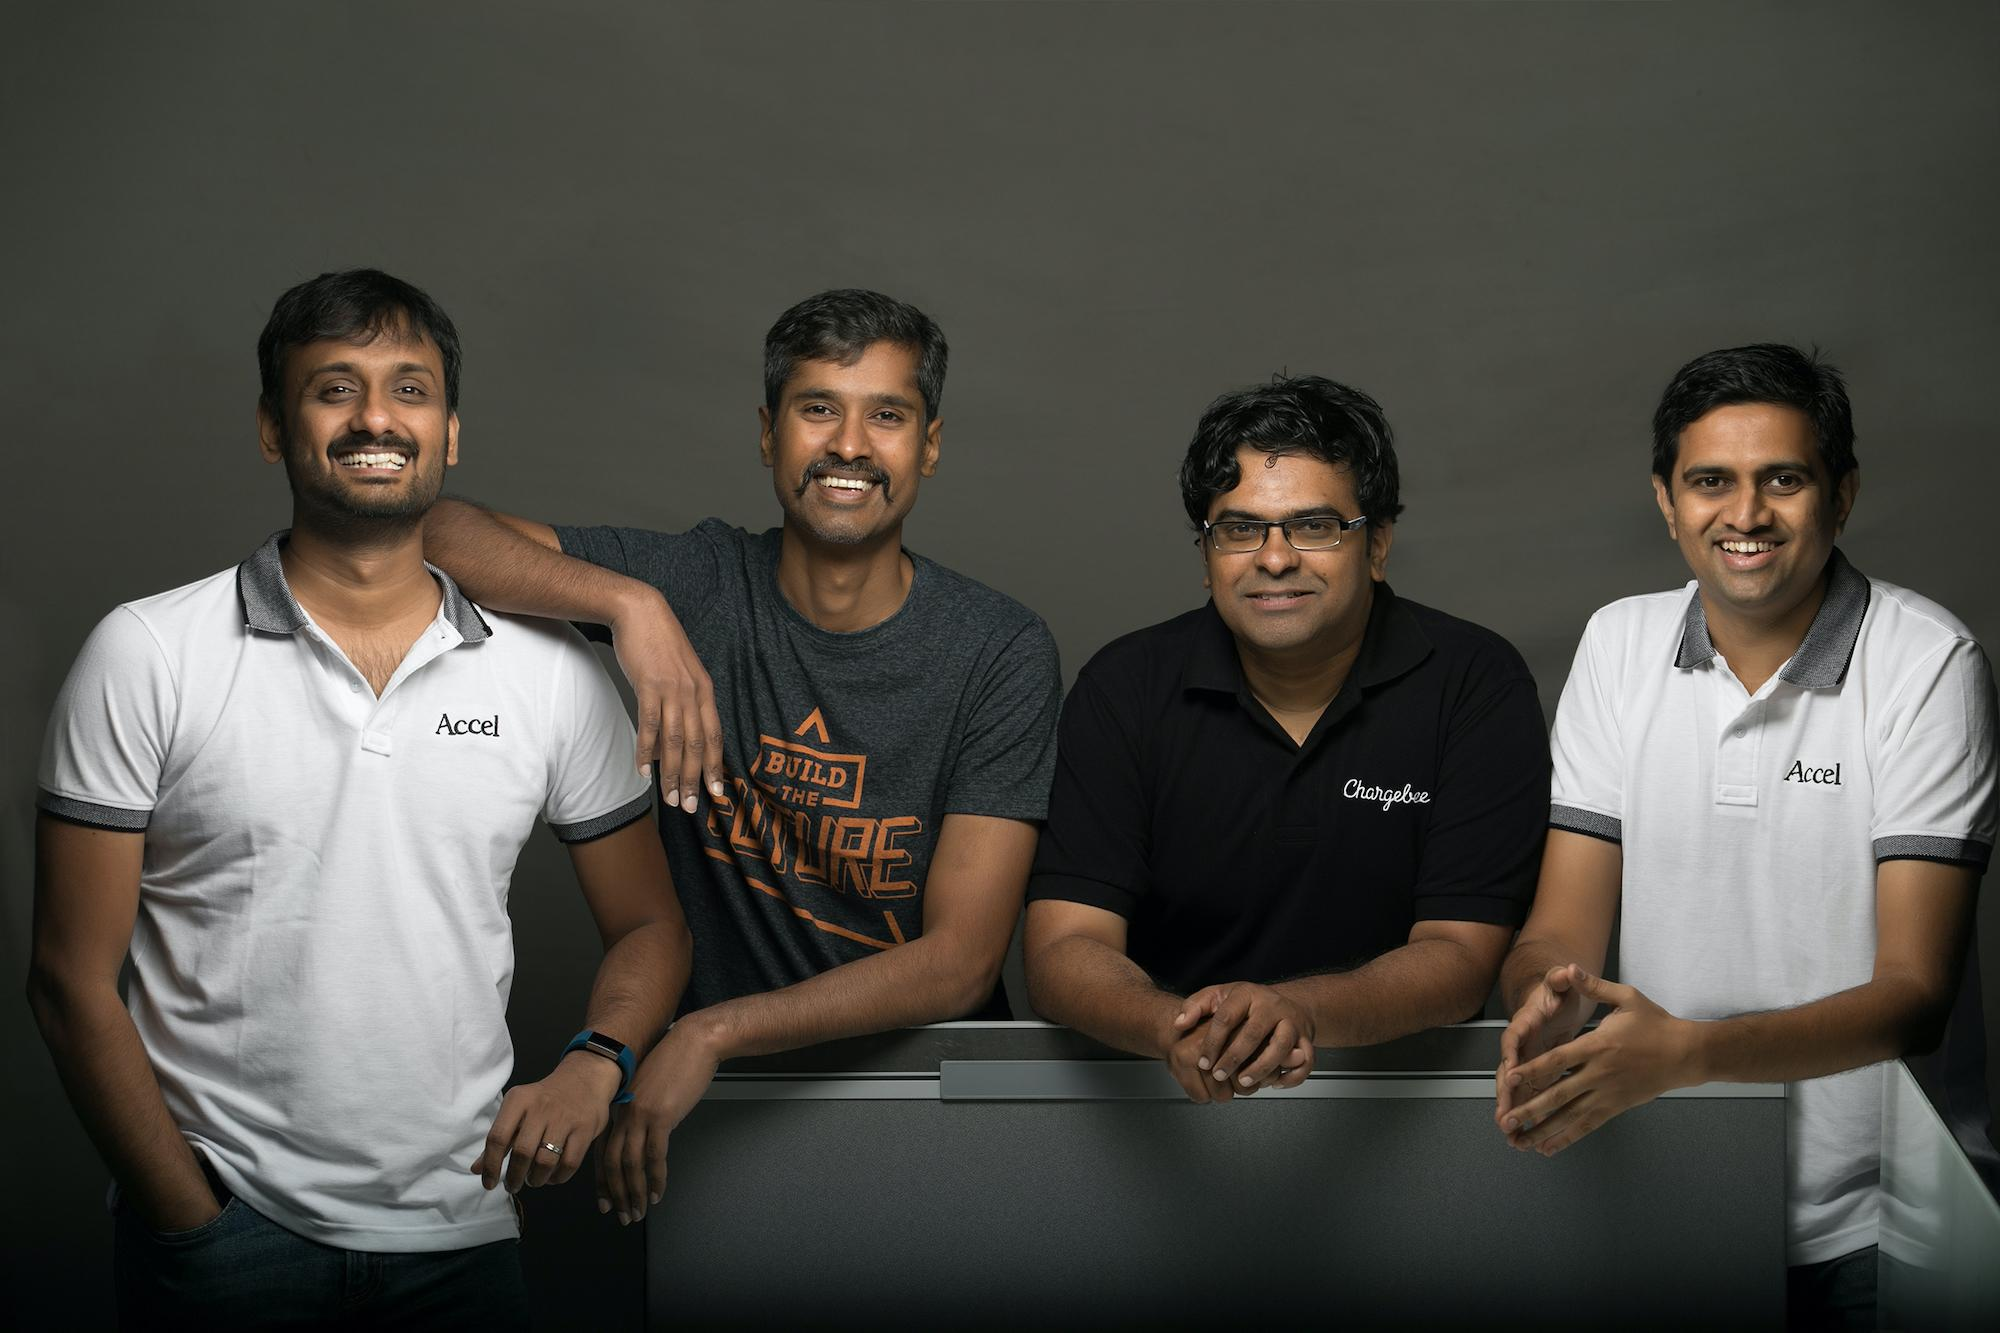 Chargebee valued at $1.4 billion in new $125 million fundraise